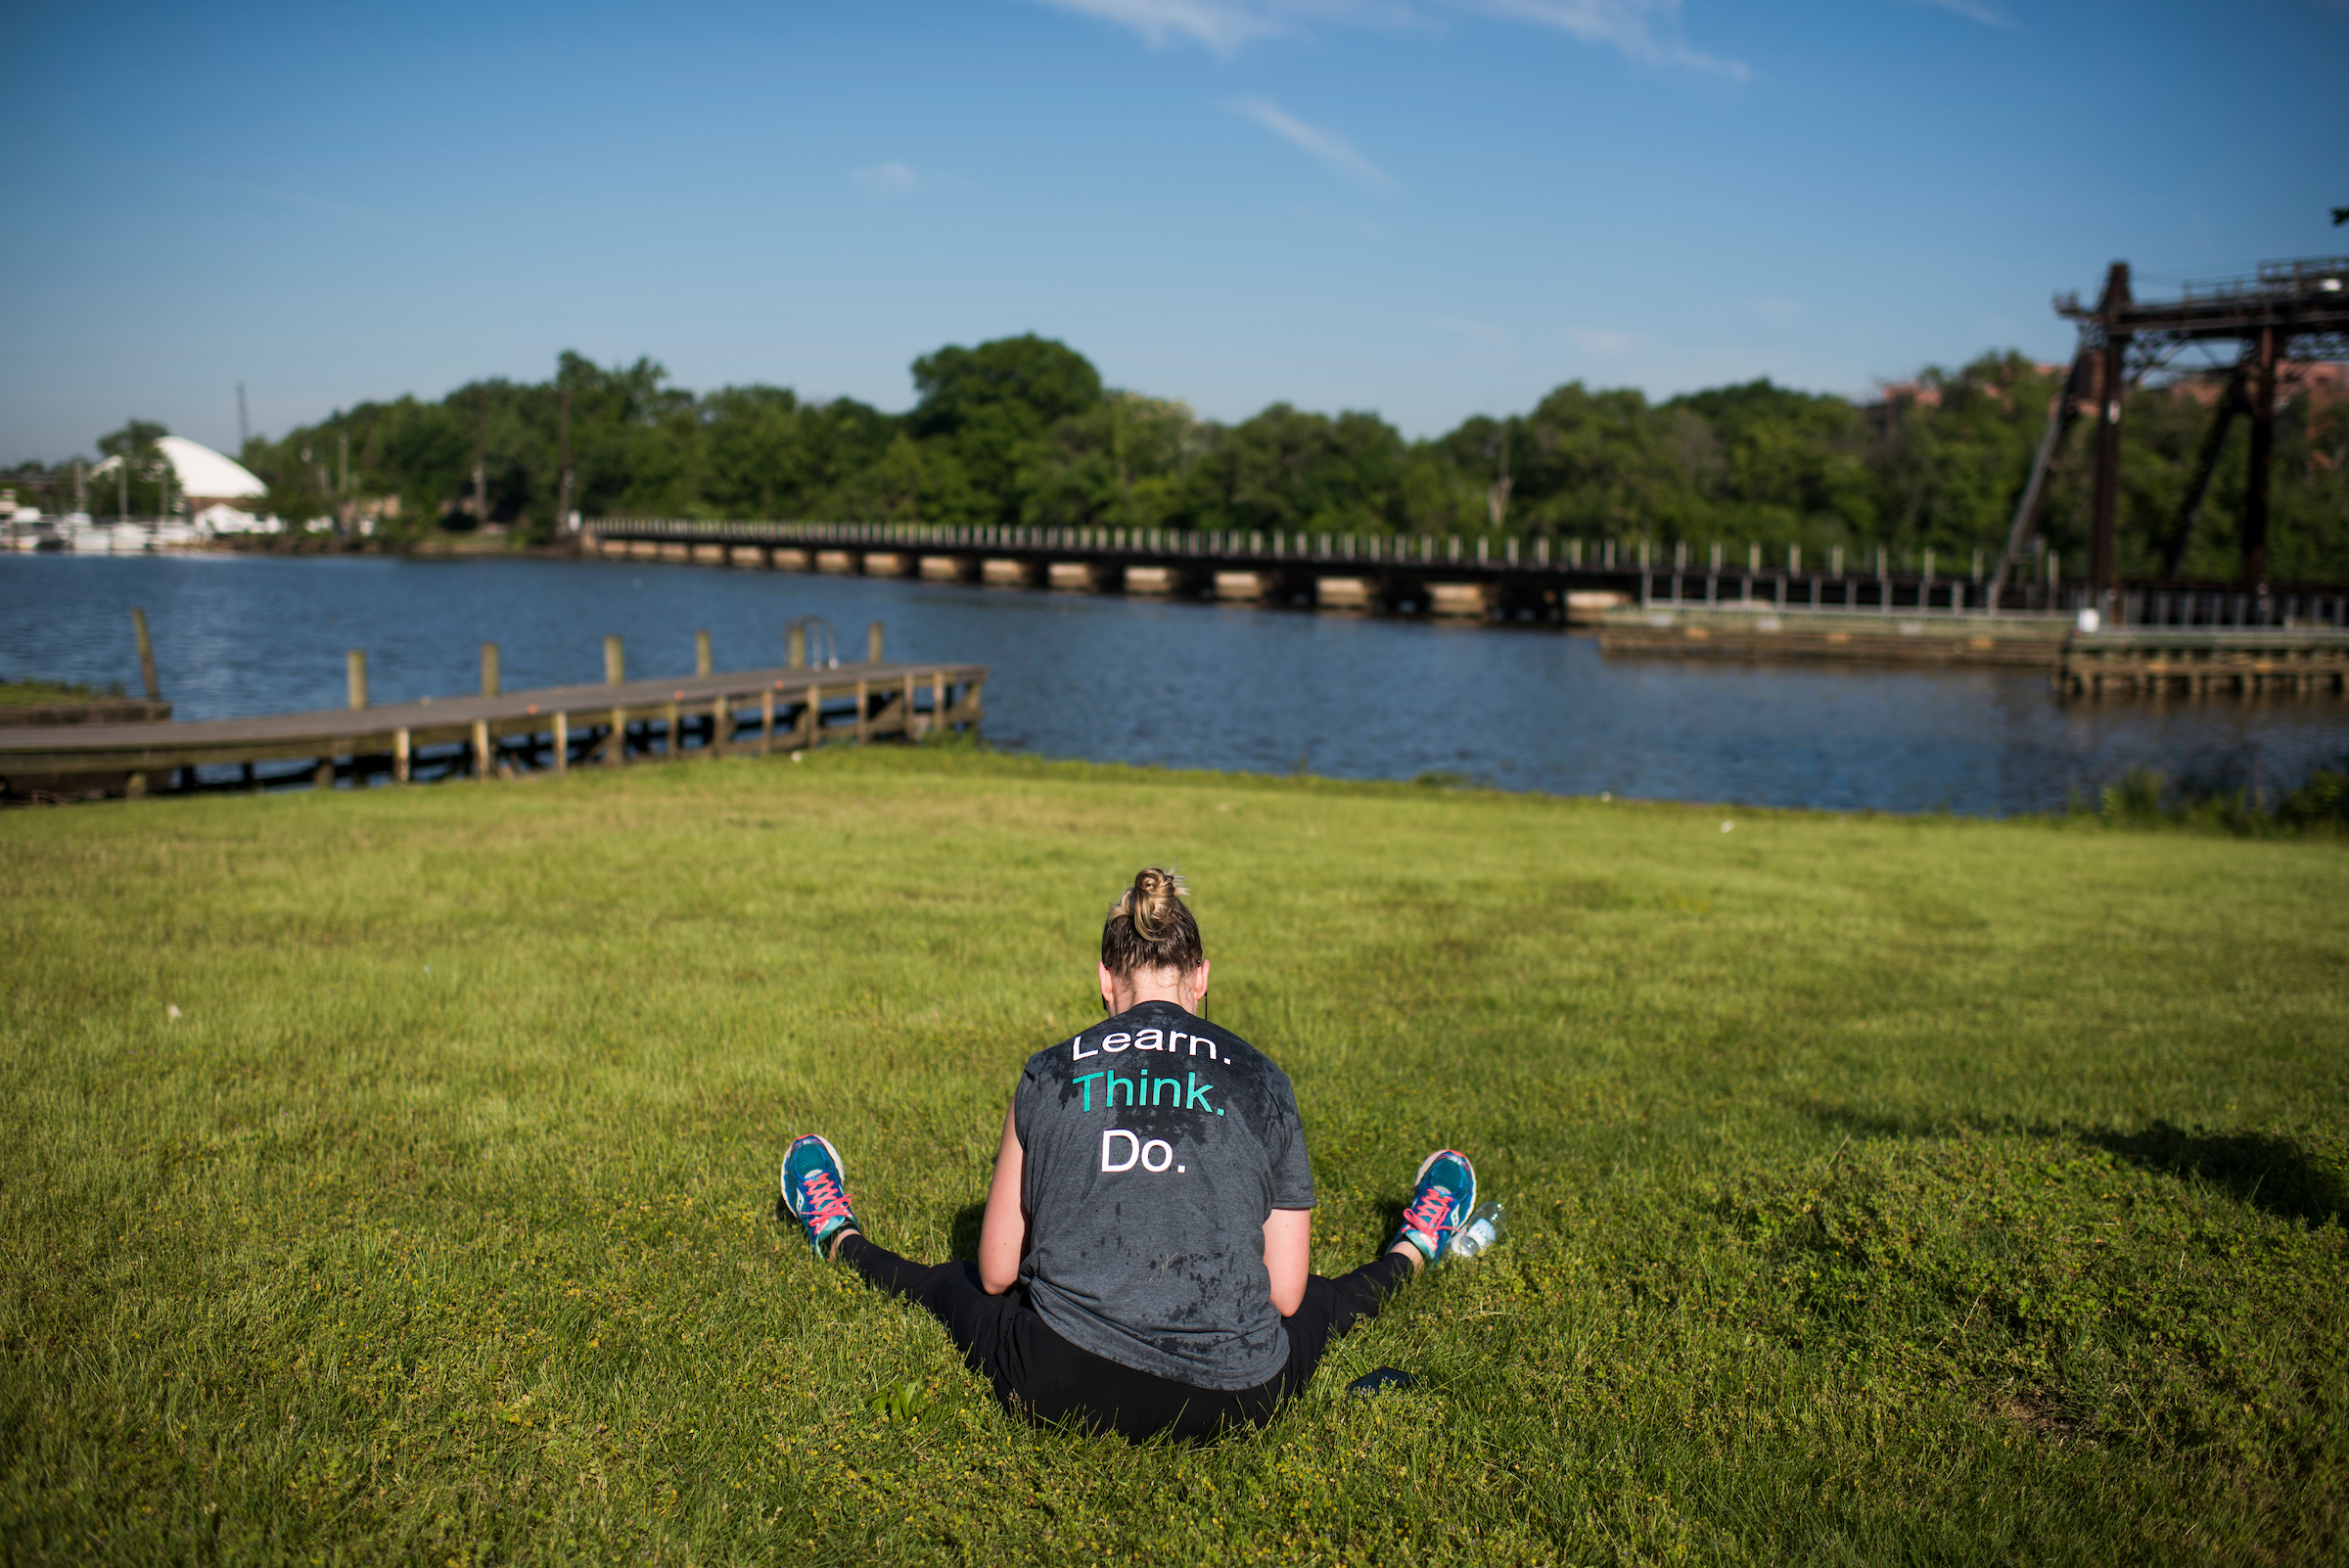 UNITED STATES - MAY 17: A runner rests after finishing the ACLI Capital Challenge 3 Mile Team Race in Anacostia Park, May 17, 2017. (Photo By Tom Williams/CQ Roll Call)